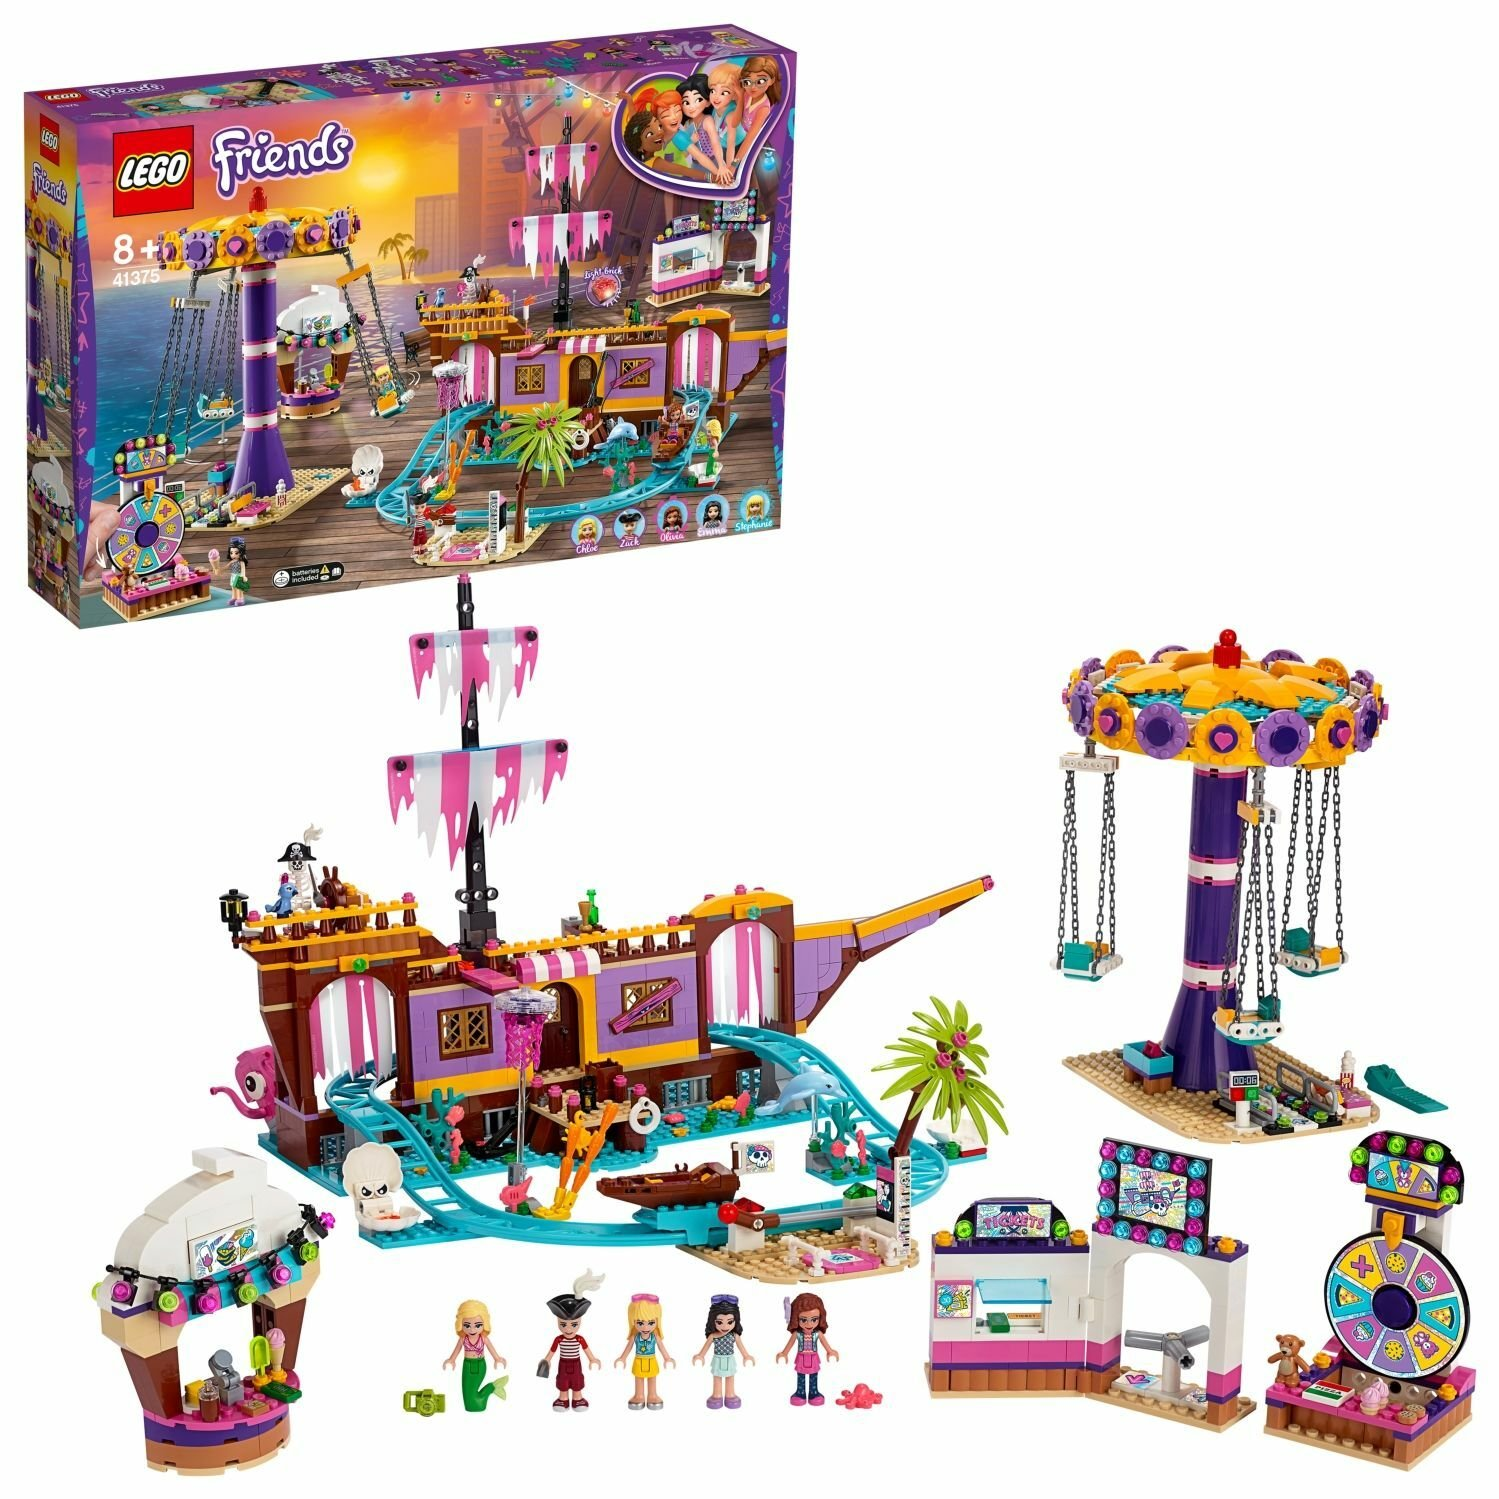 LEGO Friends Heartlake City Pier Playset - 41375